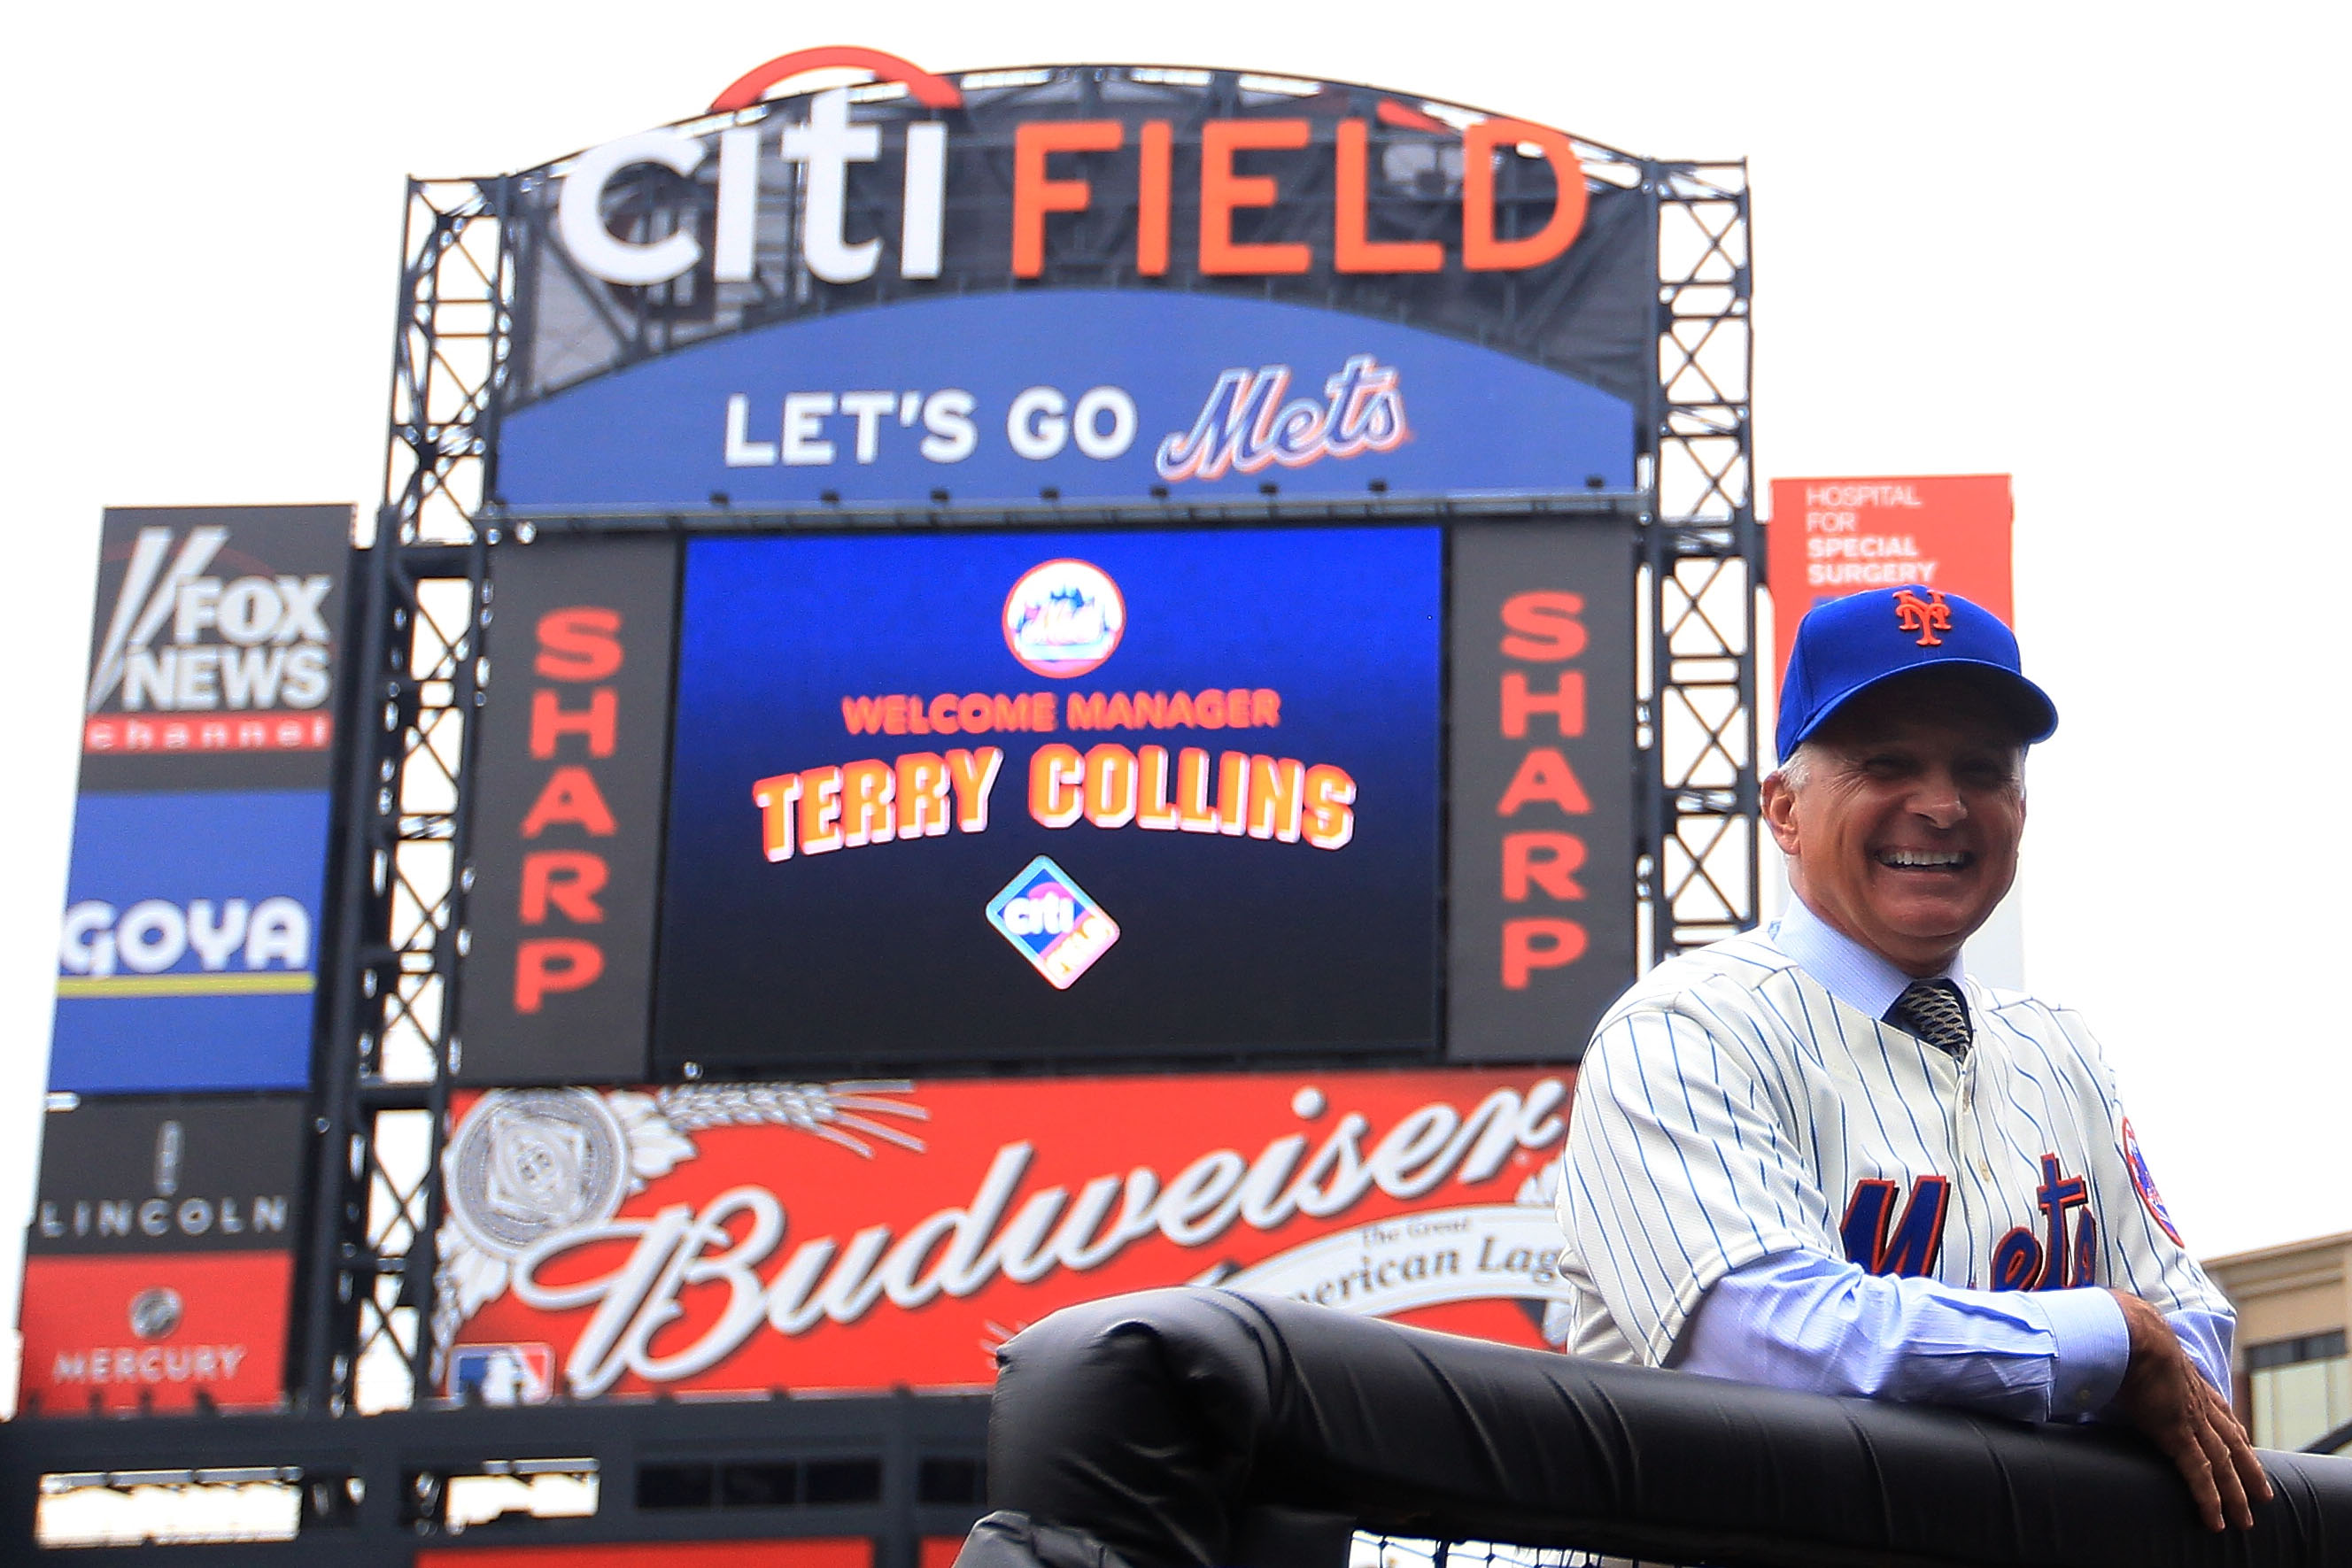 Terry Collins will have his work cut out for him in his first year as the Mets' skipper.